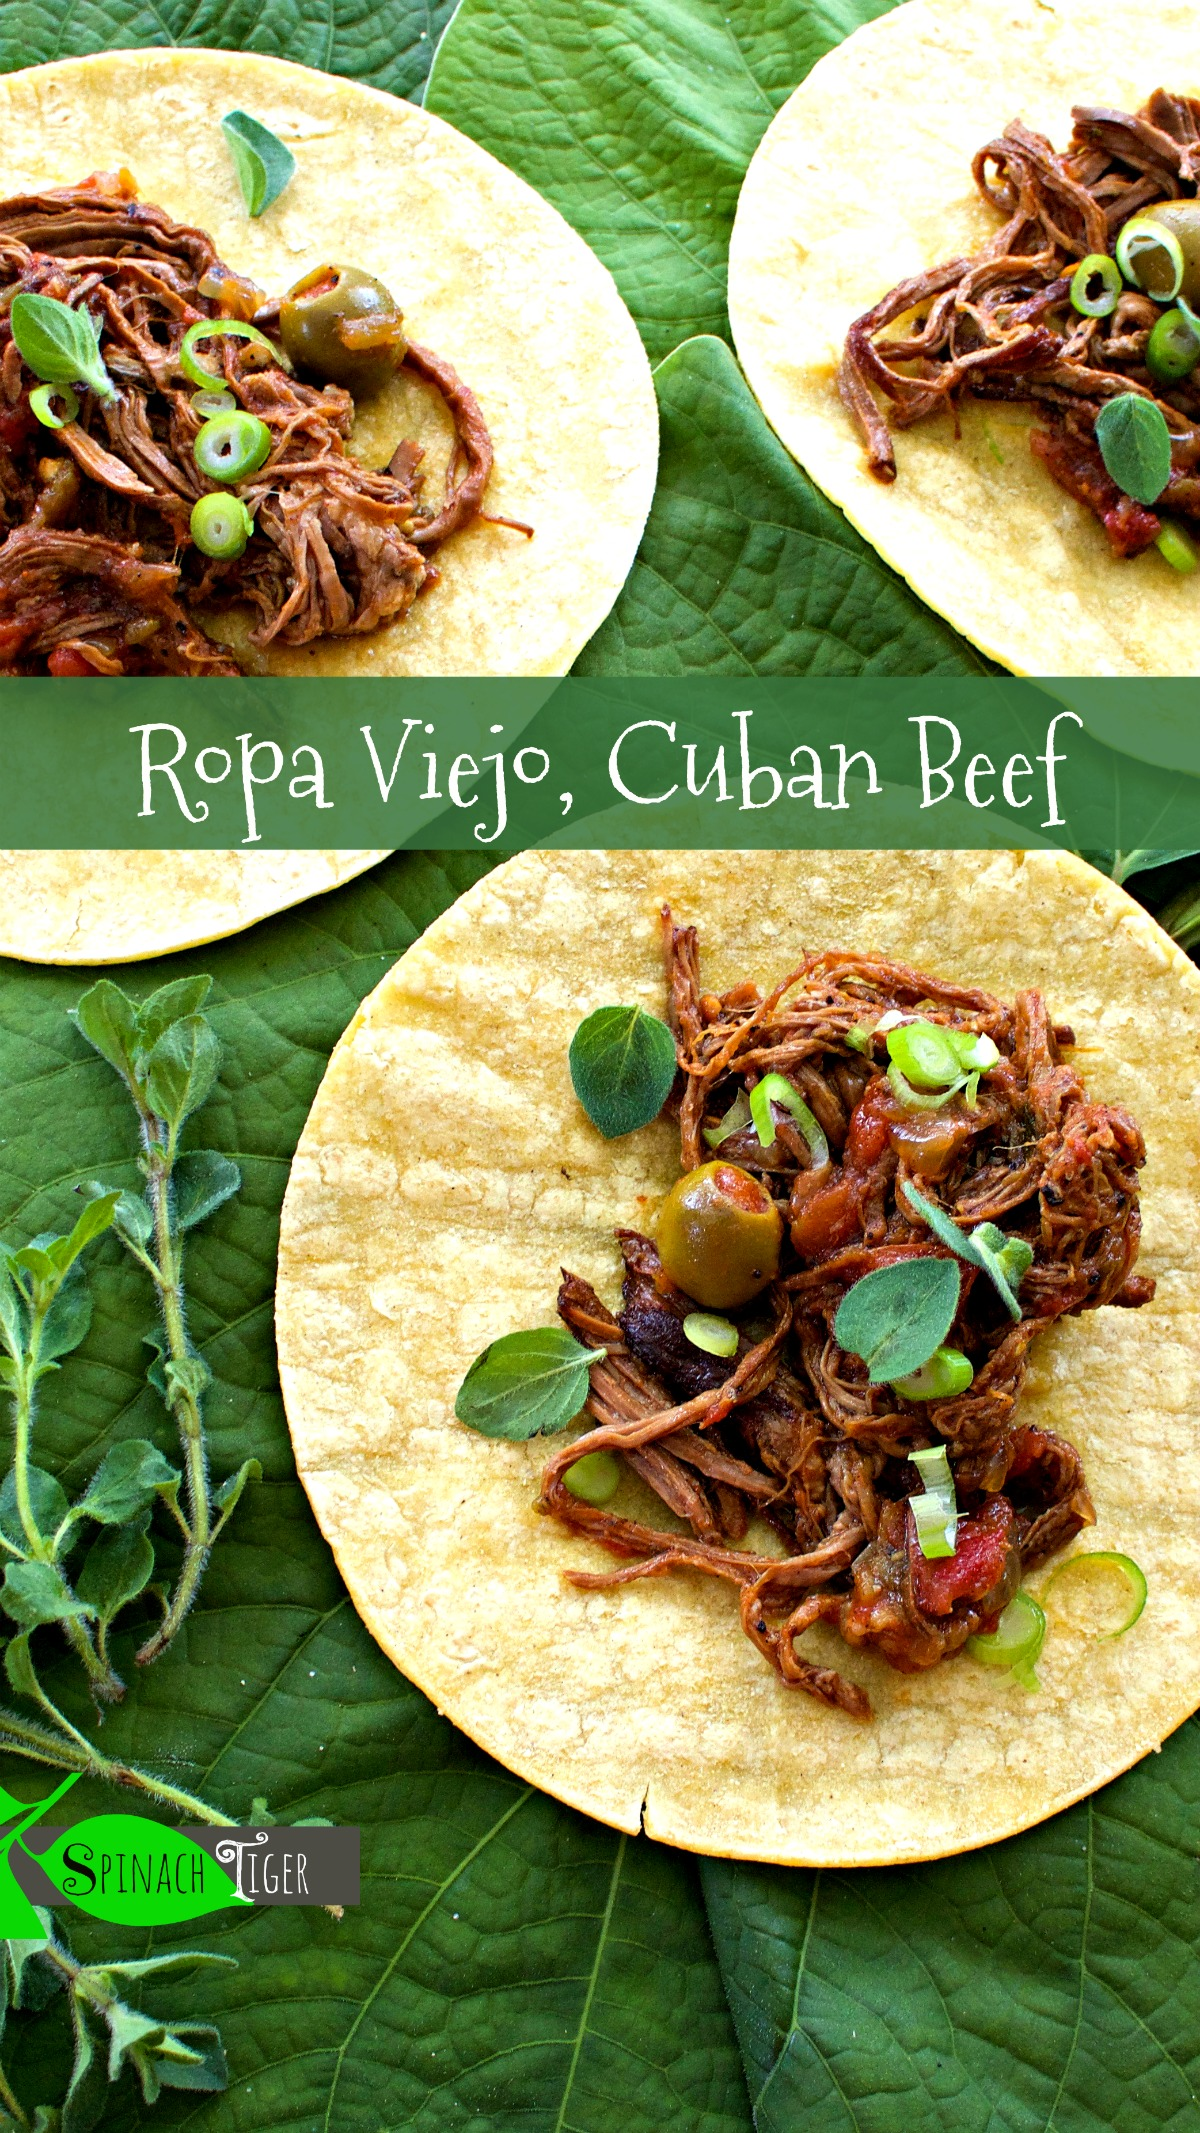 How to Make Ropa Viejo, Cuban Shredded Beef with Corn Tortillas from Spinach Tiger